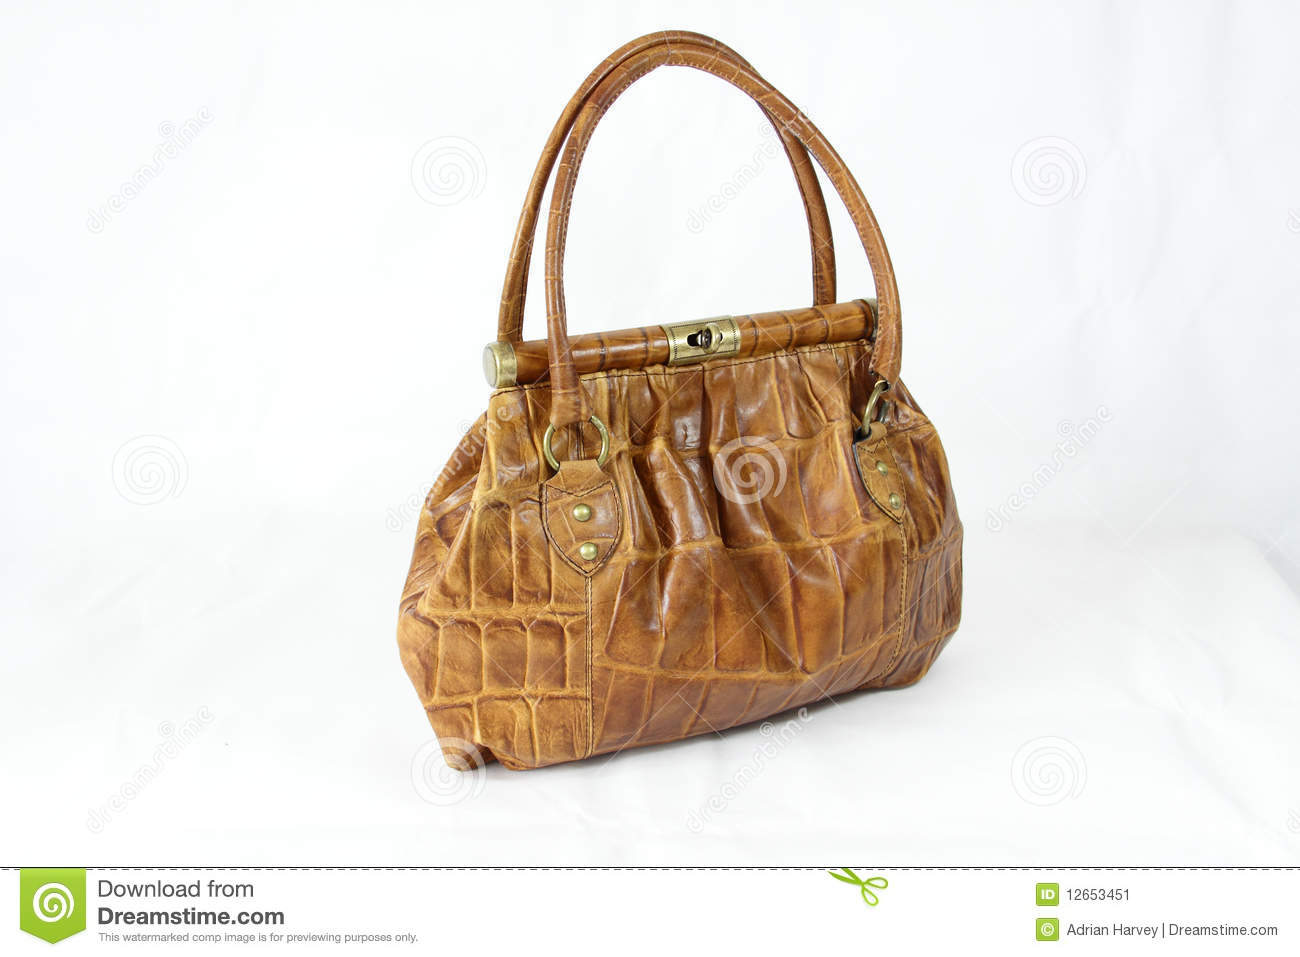 Light brown coloured crocodile skin handbag